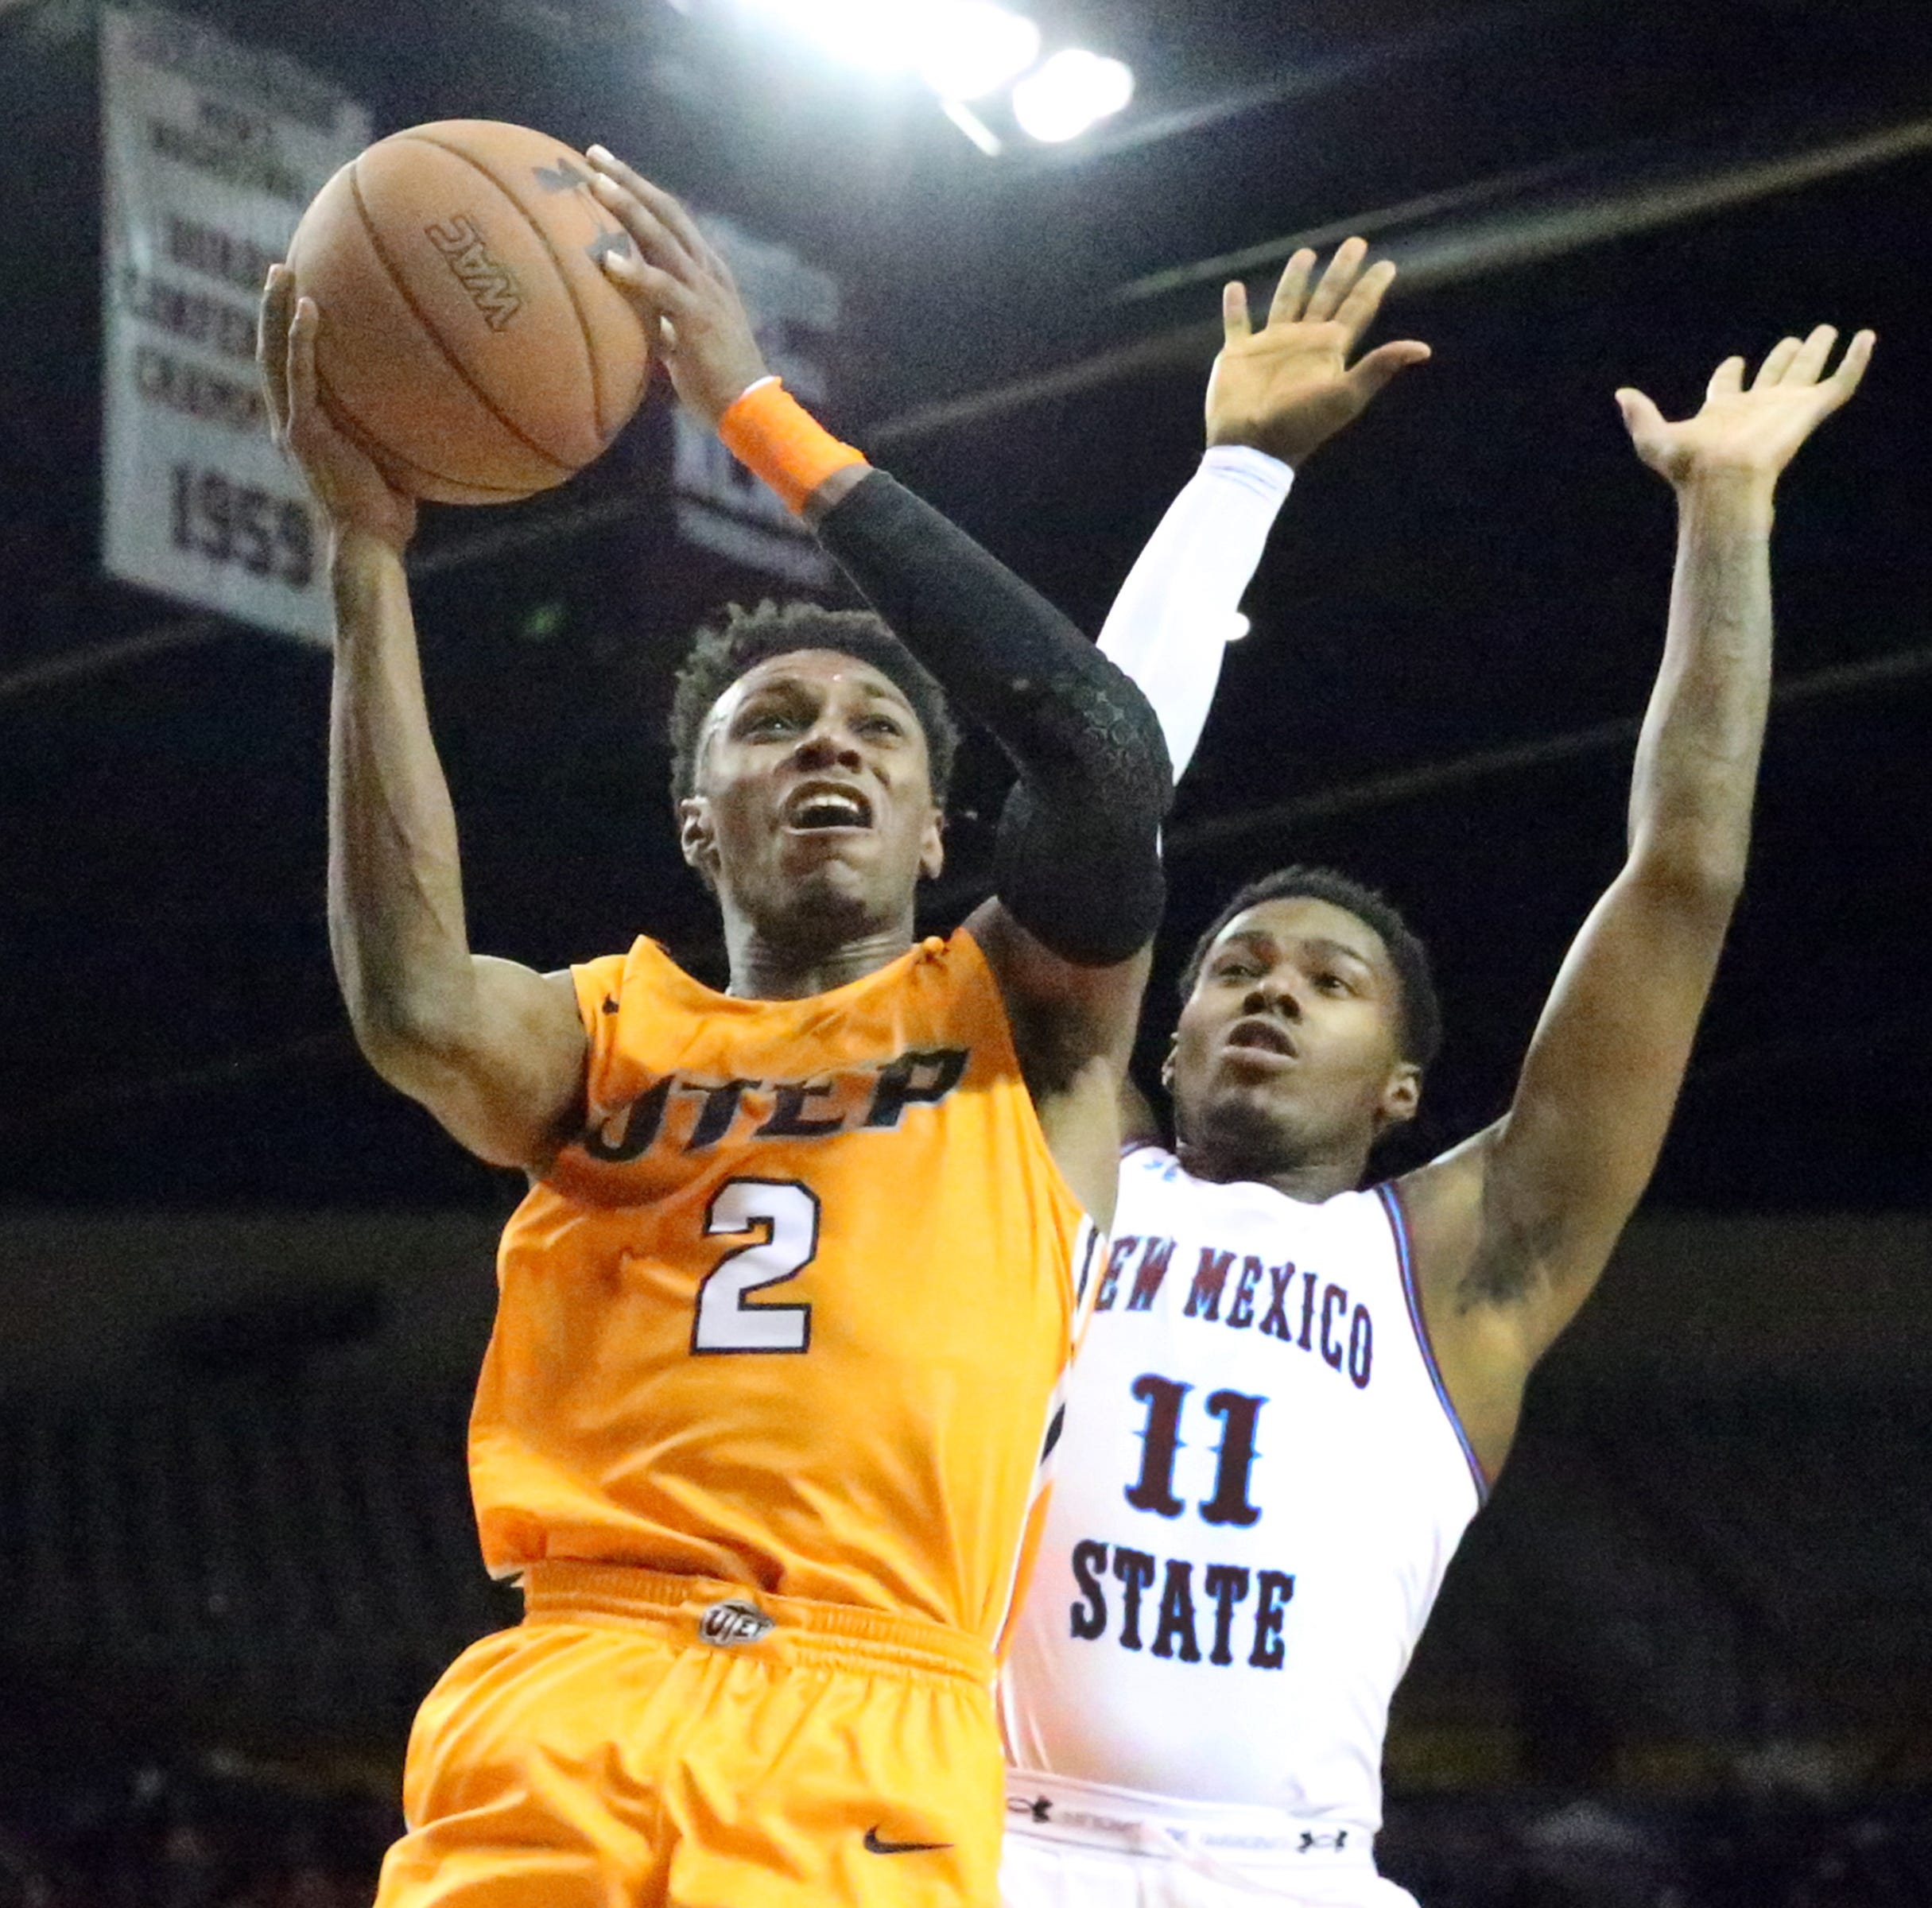 NMSU vs. UTEP basketball score: Aggies romp past Miners